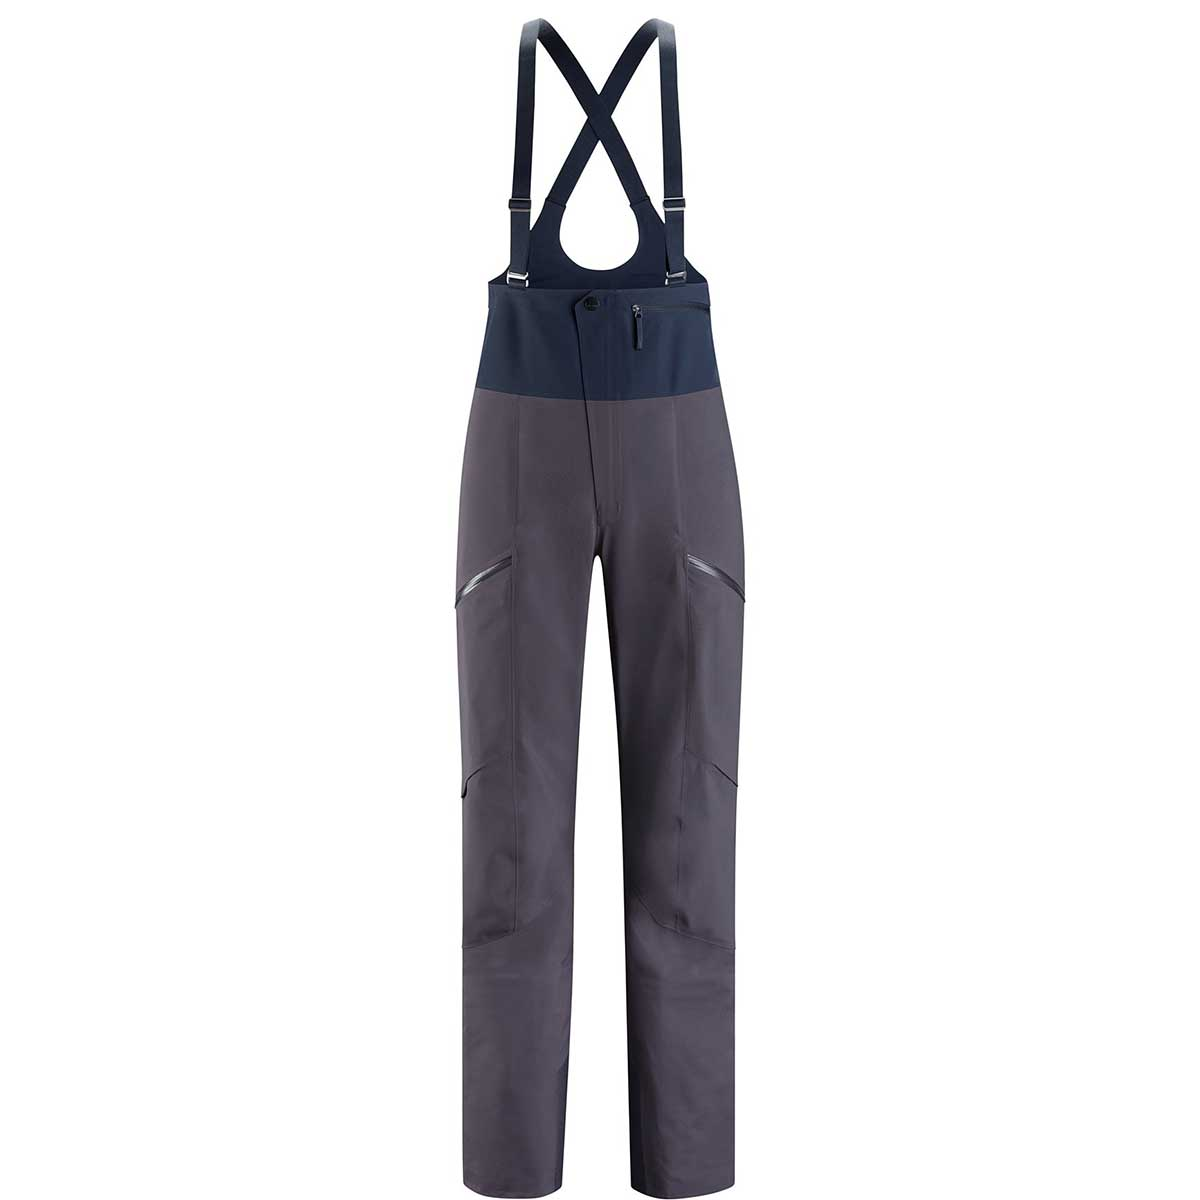 Arcteryx women's Shashka Pant in Whiskey Jack front view